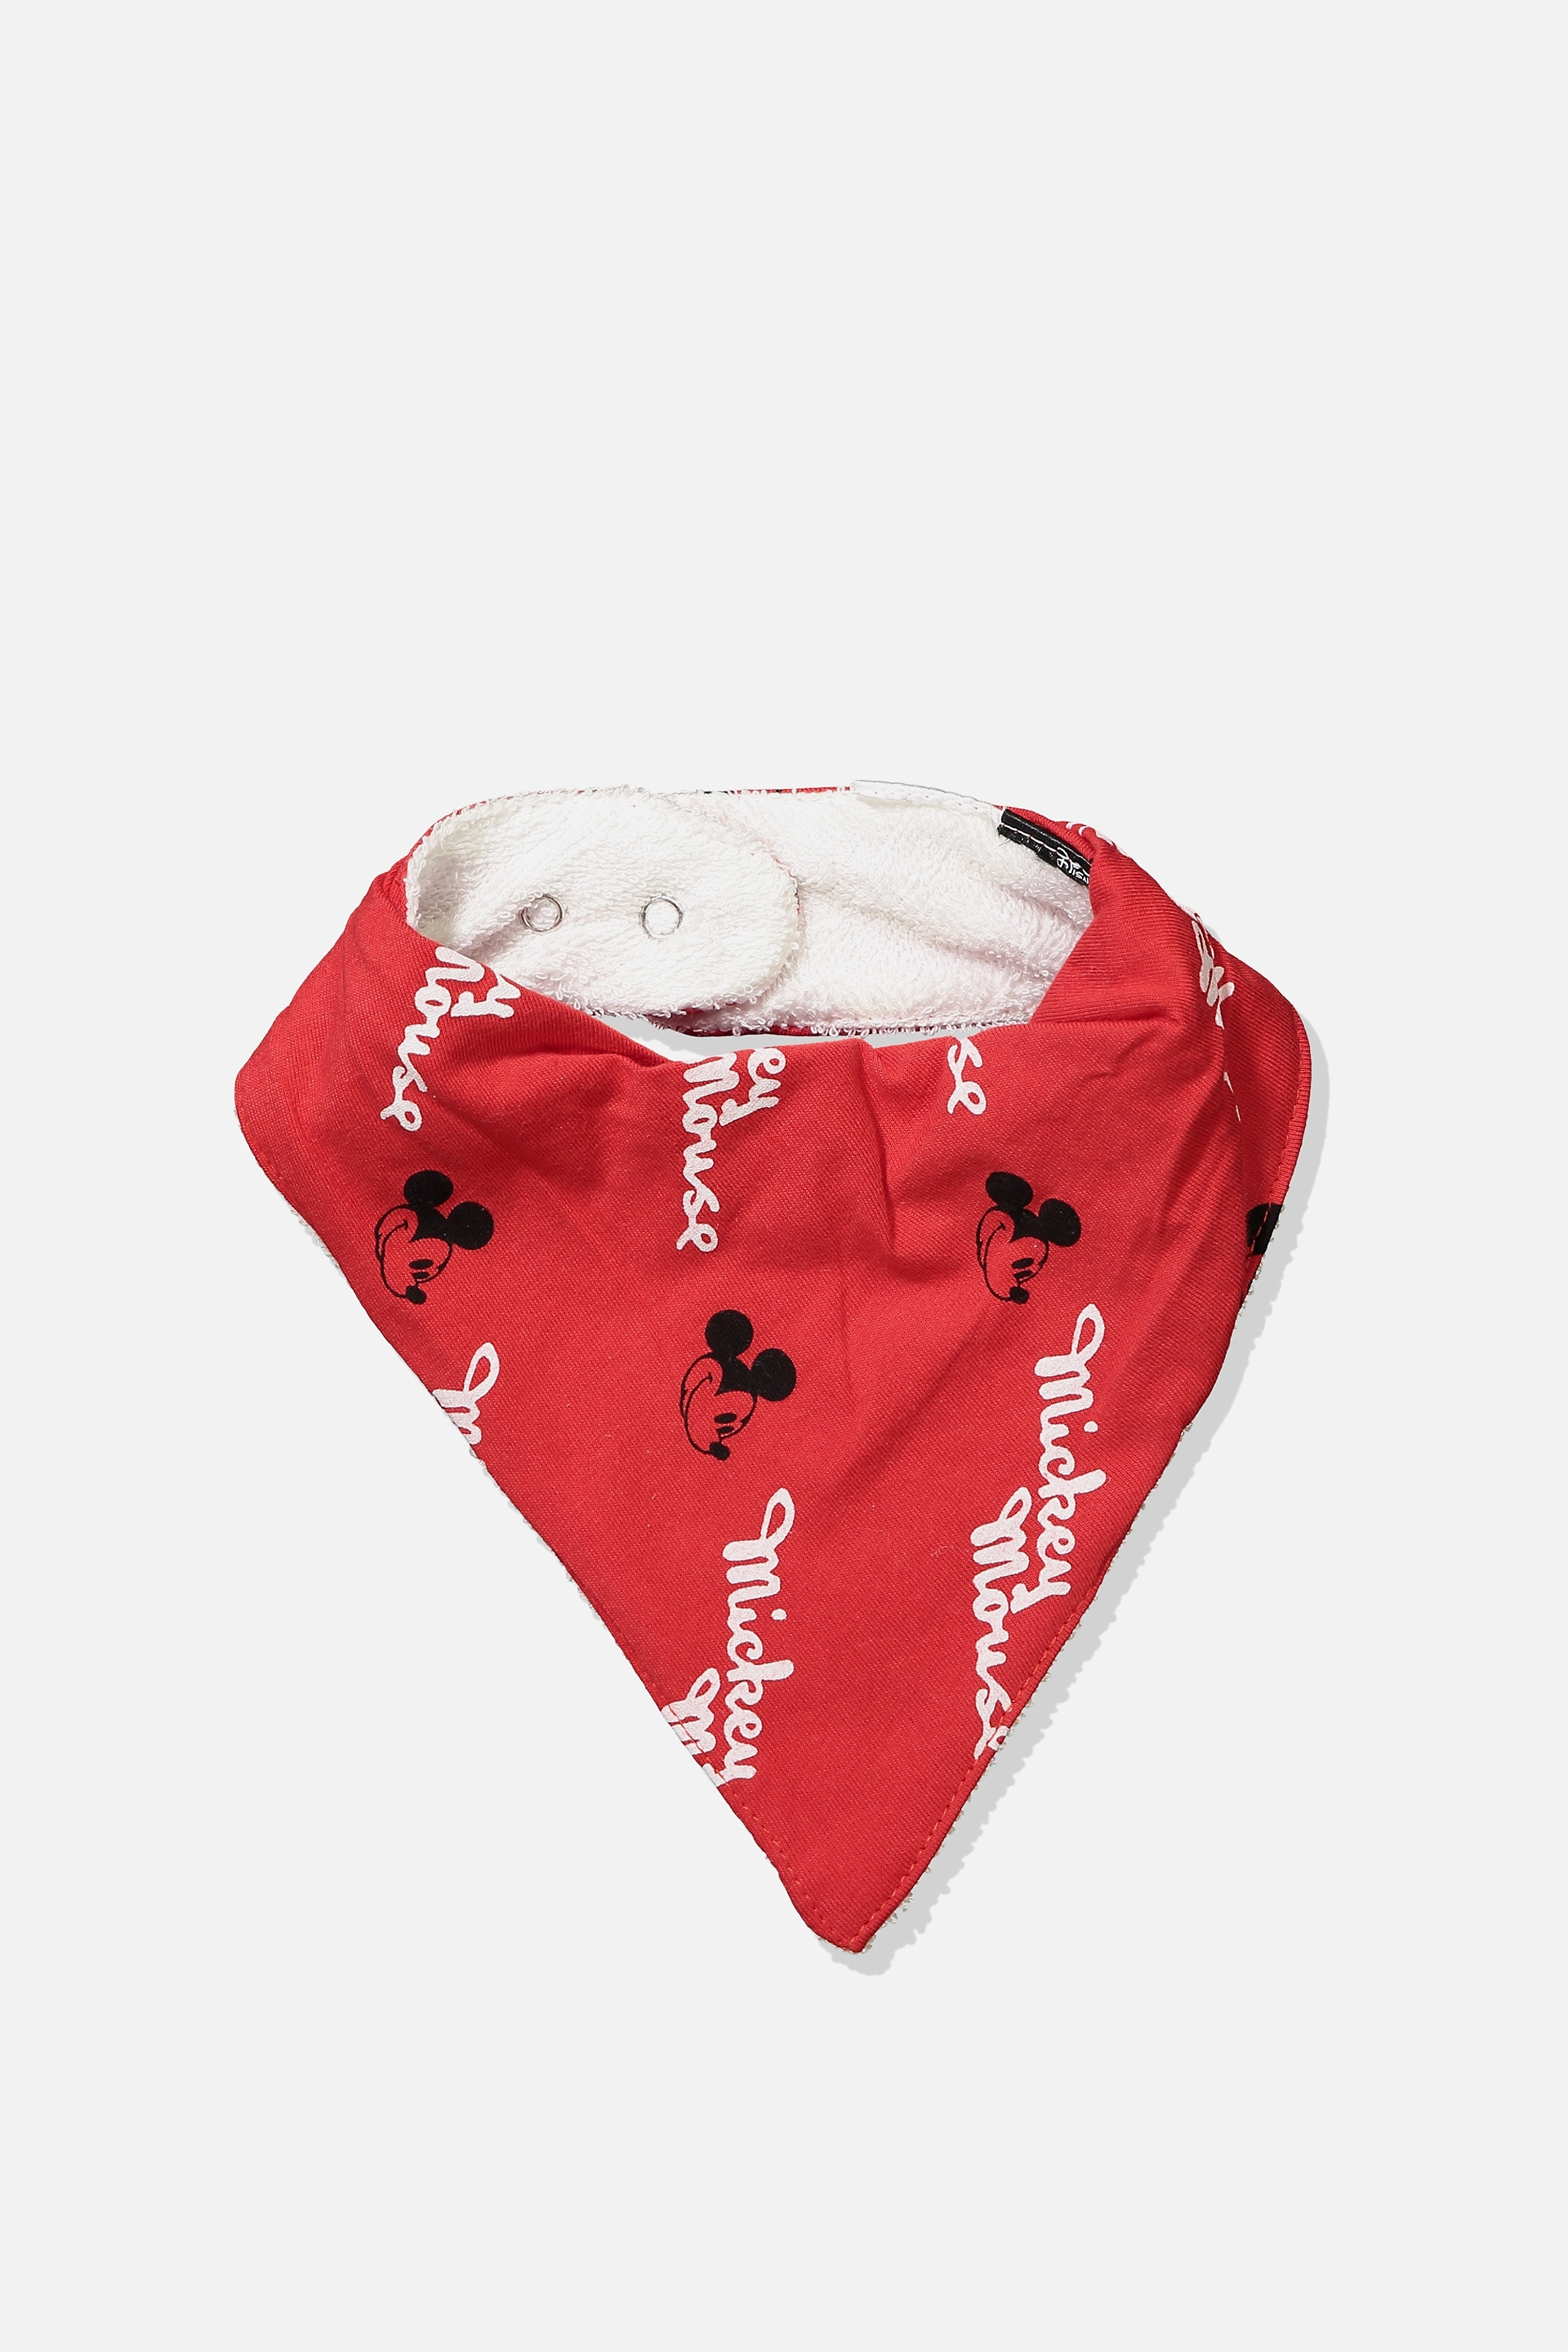 Cotton On Kids  License Dribble Bib  Flame scarletmickey mouse